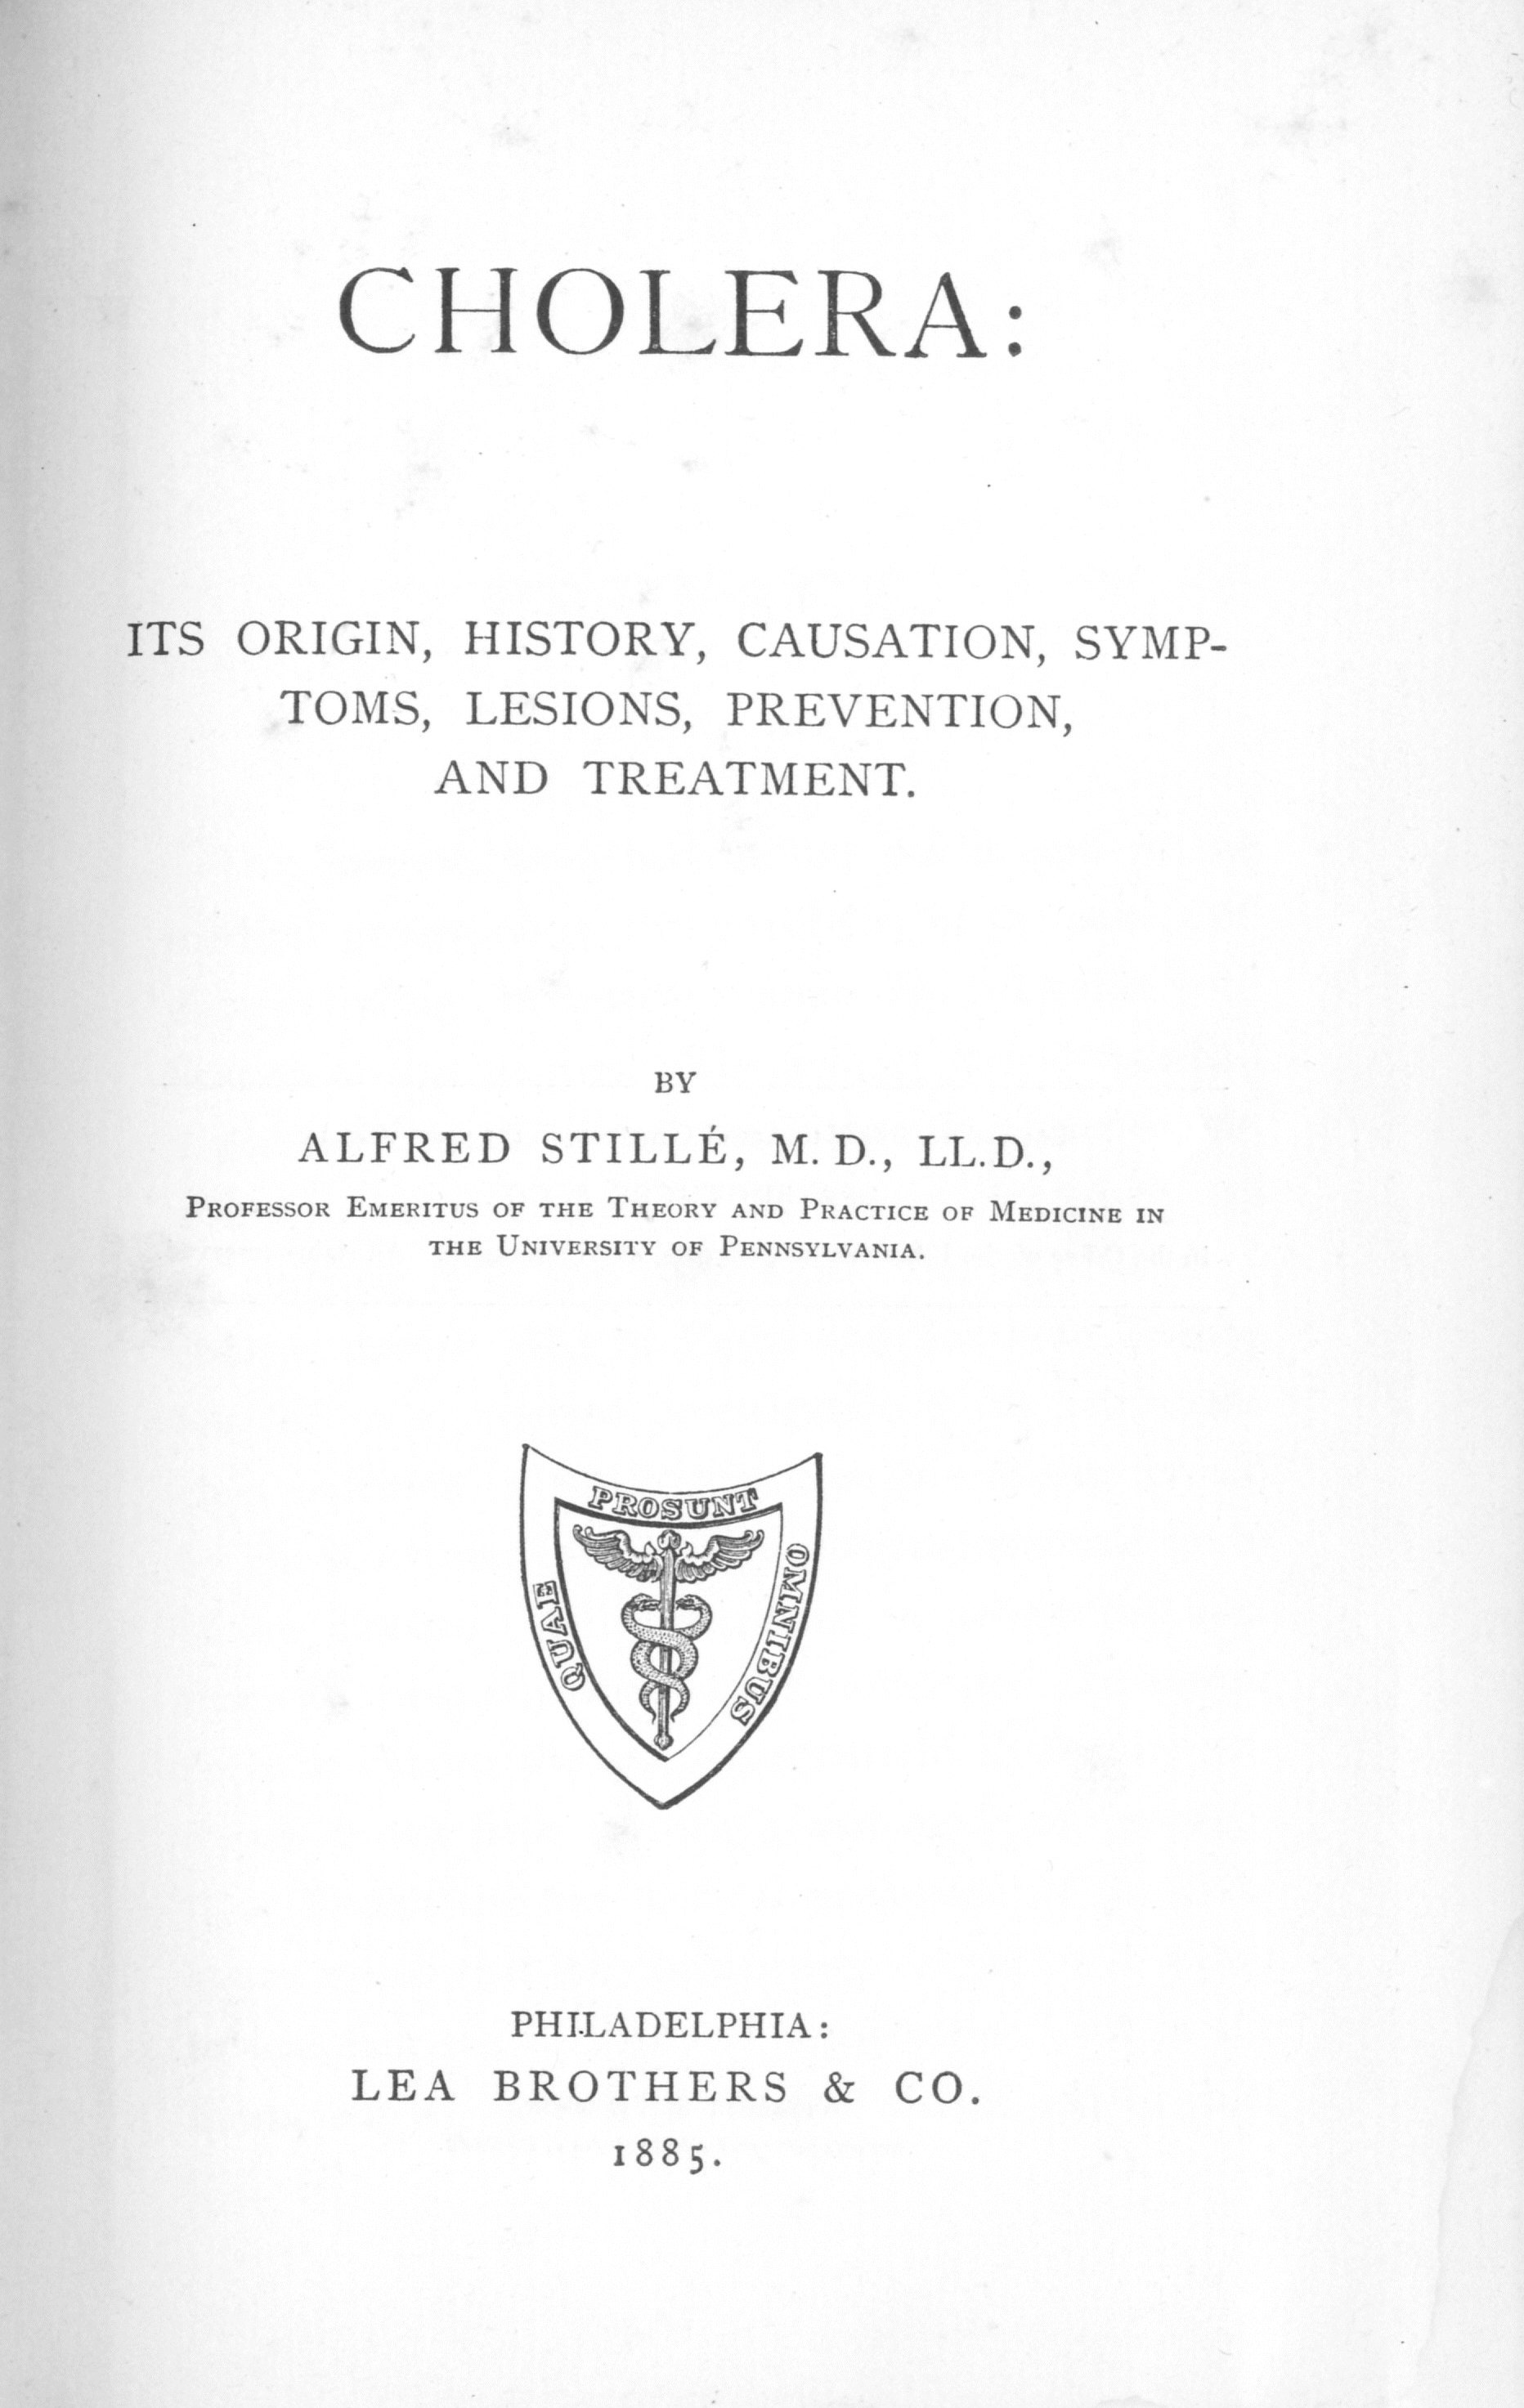 alfred e stille m d cholera vibrio and quarantine  alfred stille